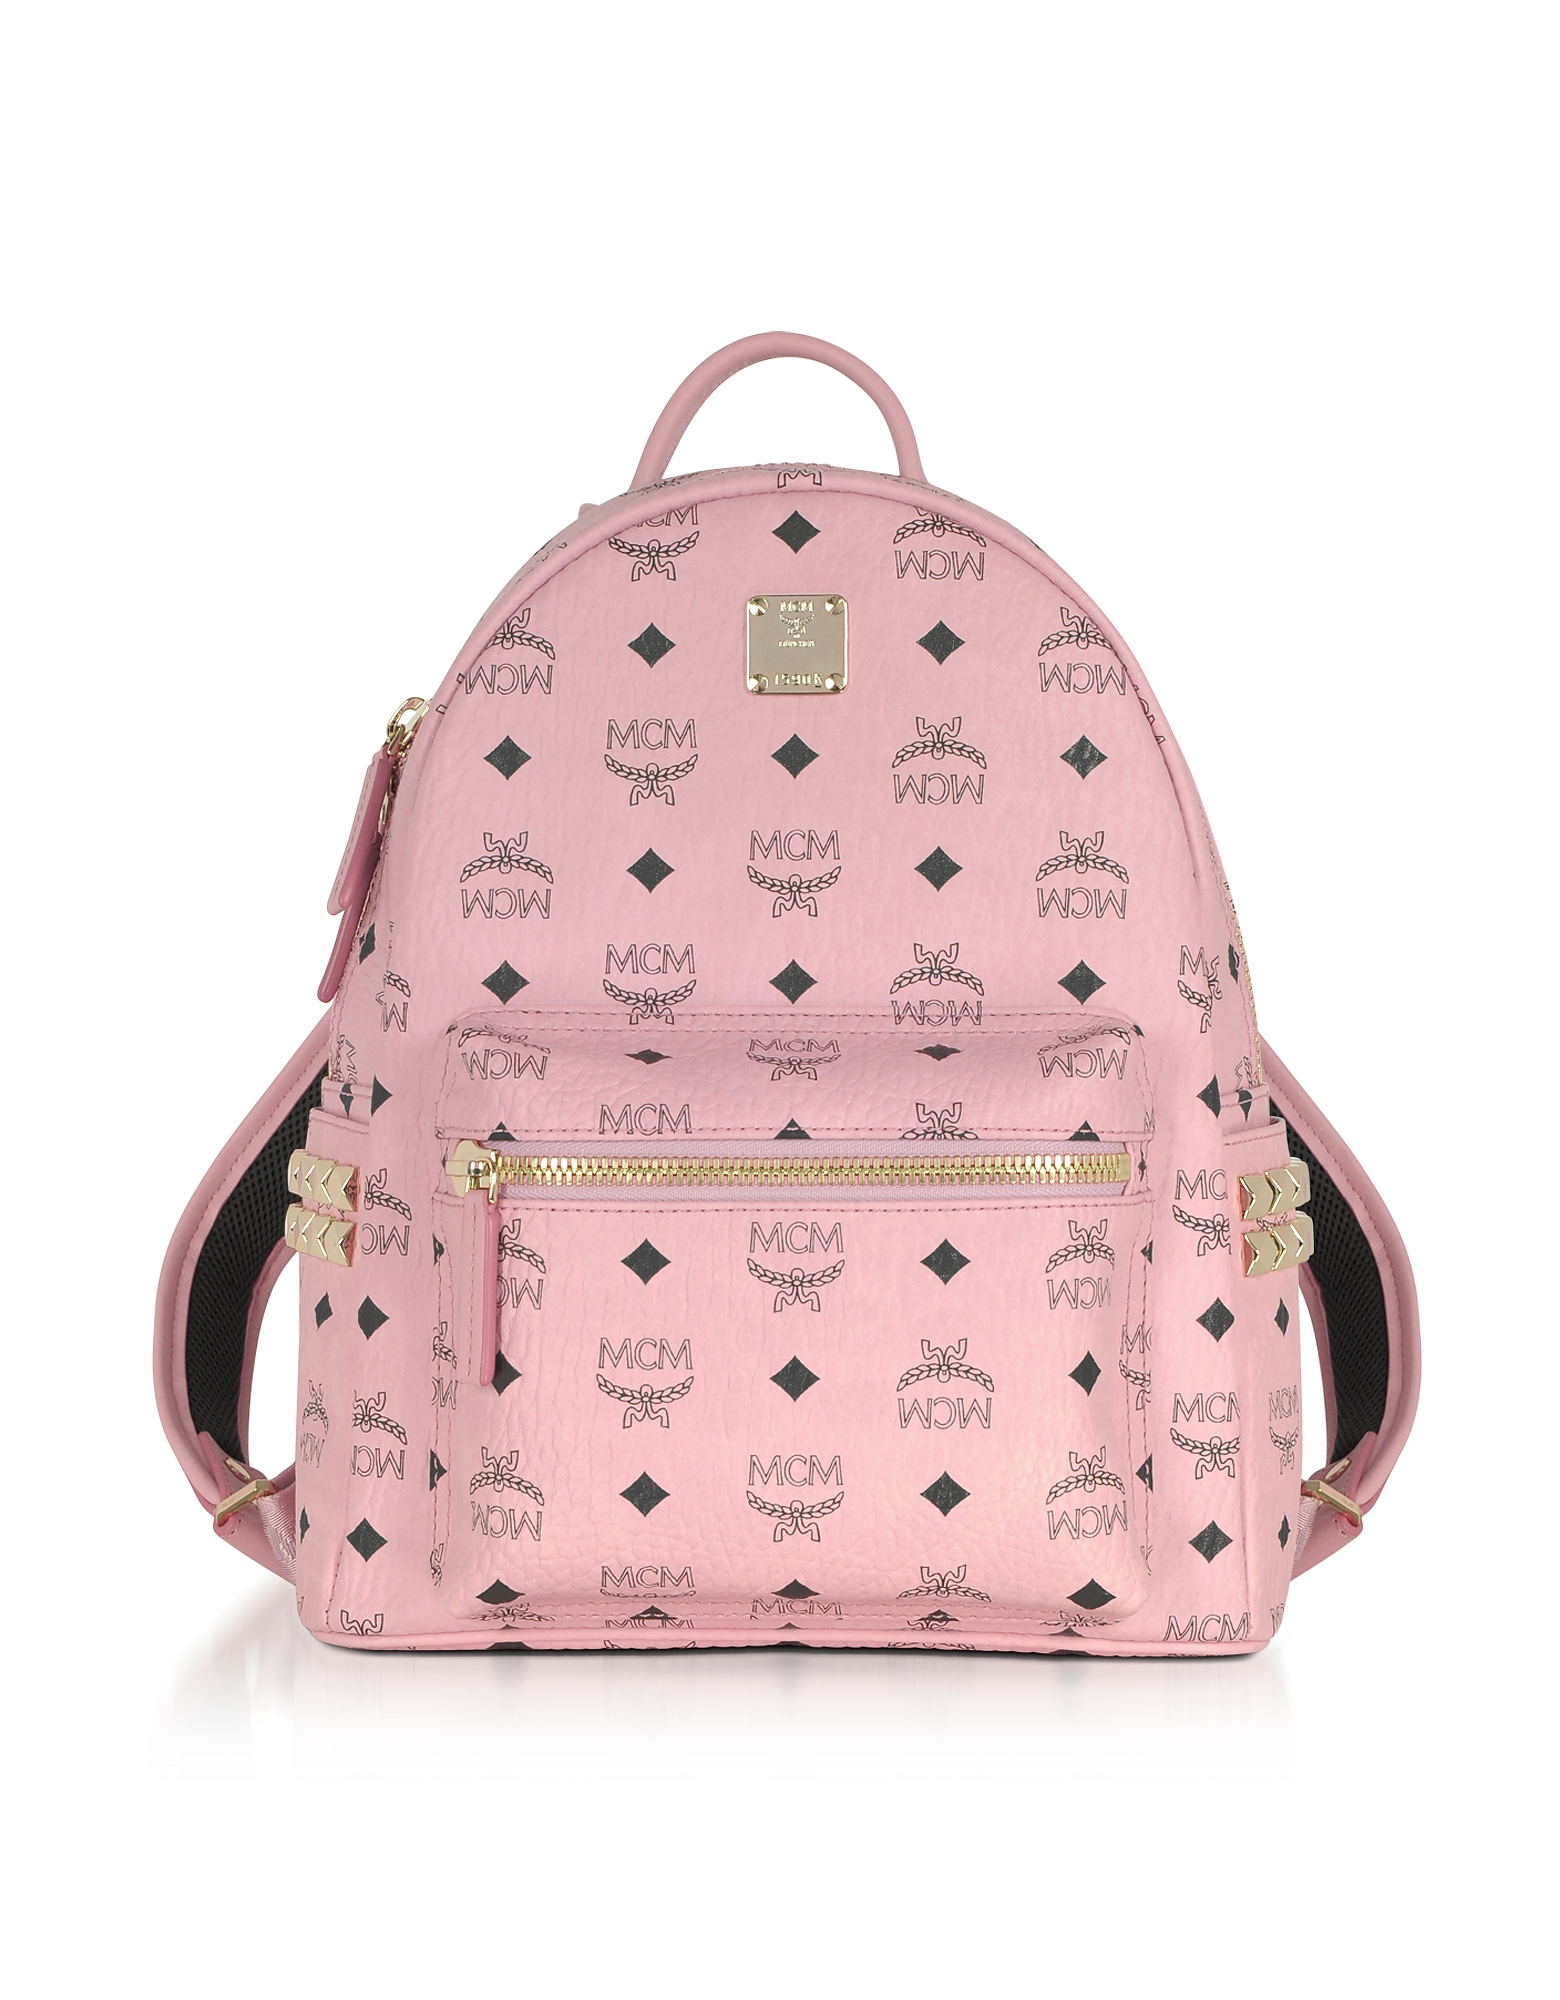 MCM Handbags, Soft Pink Small Stark Backpack